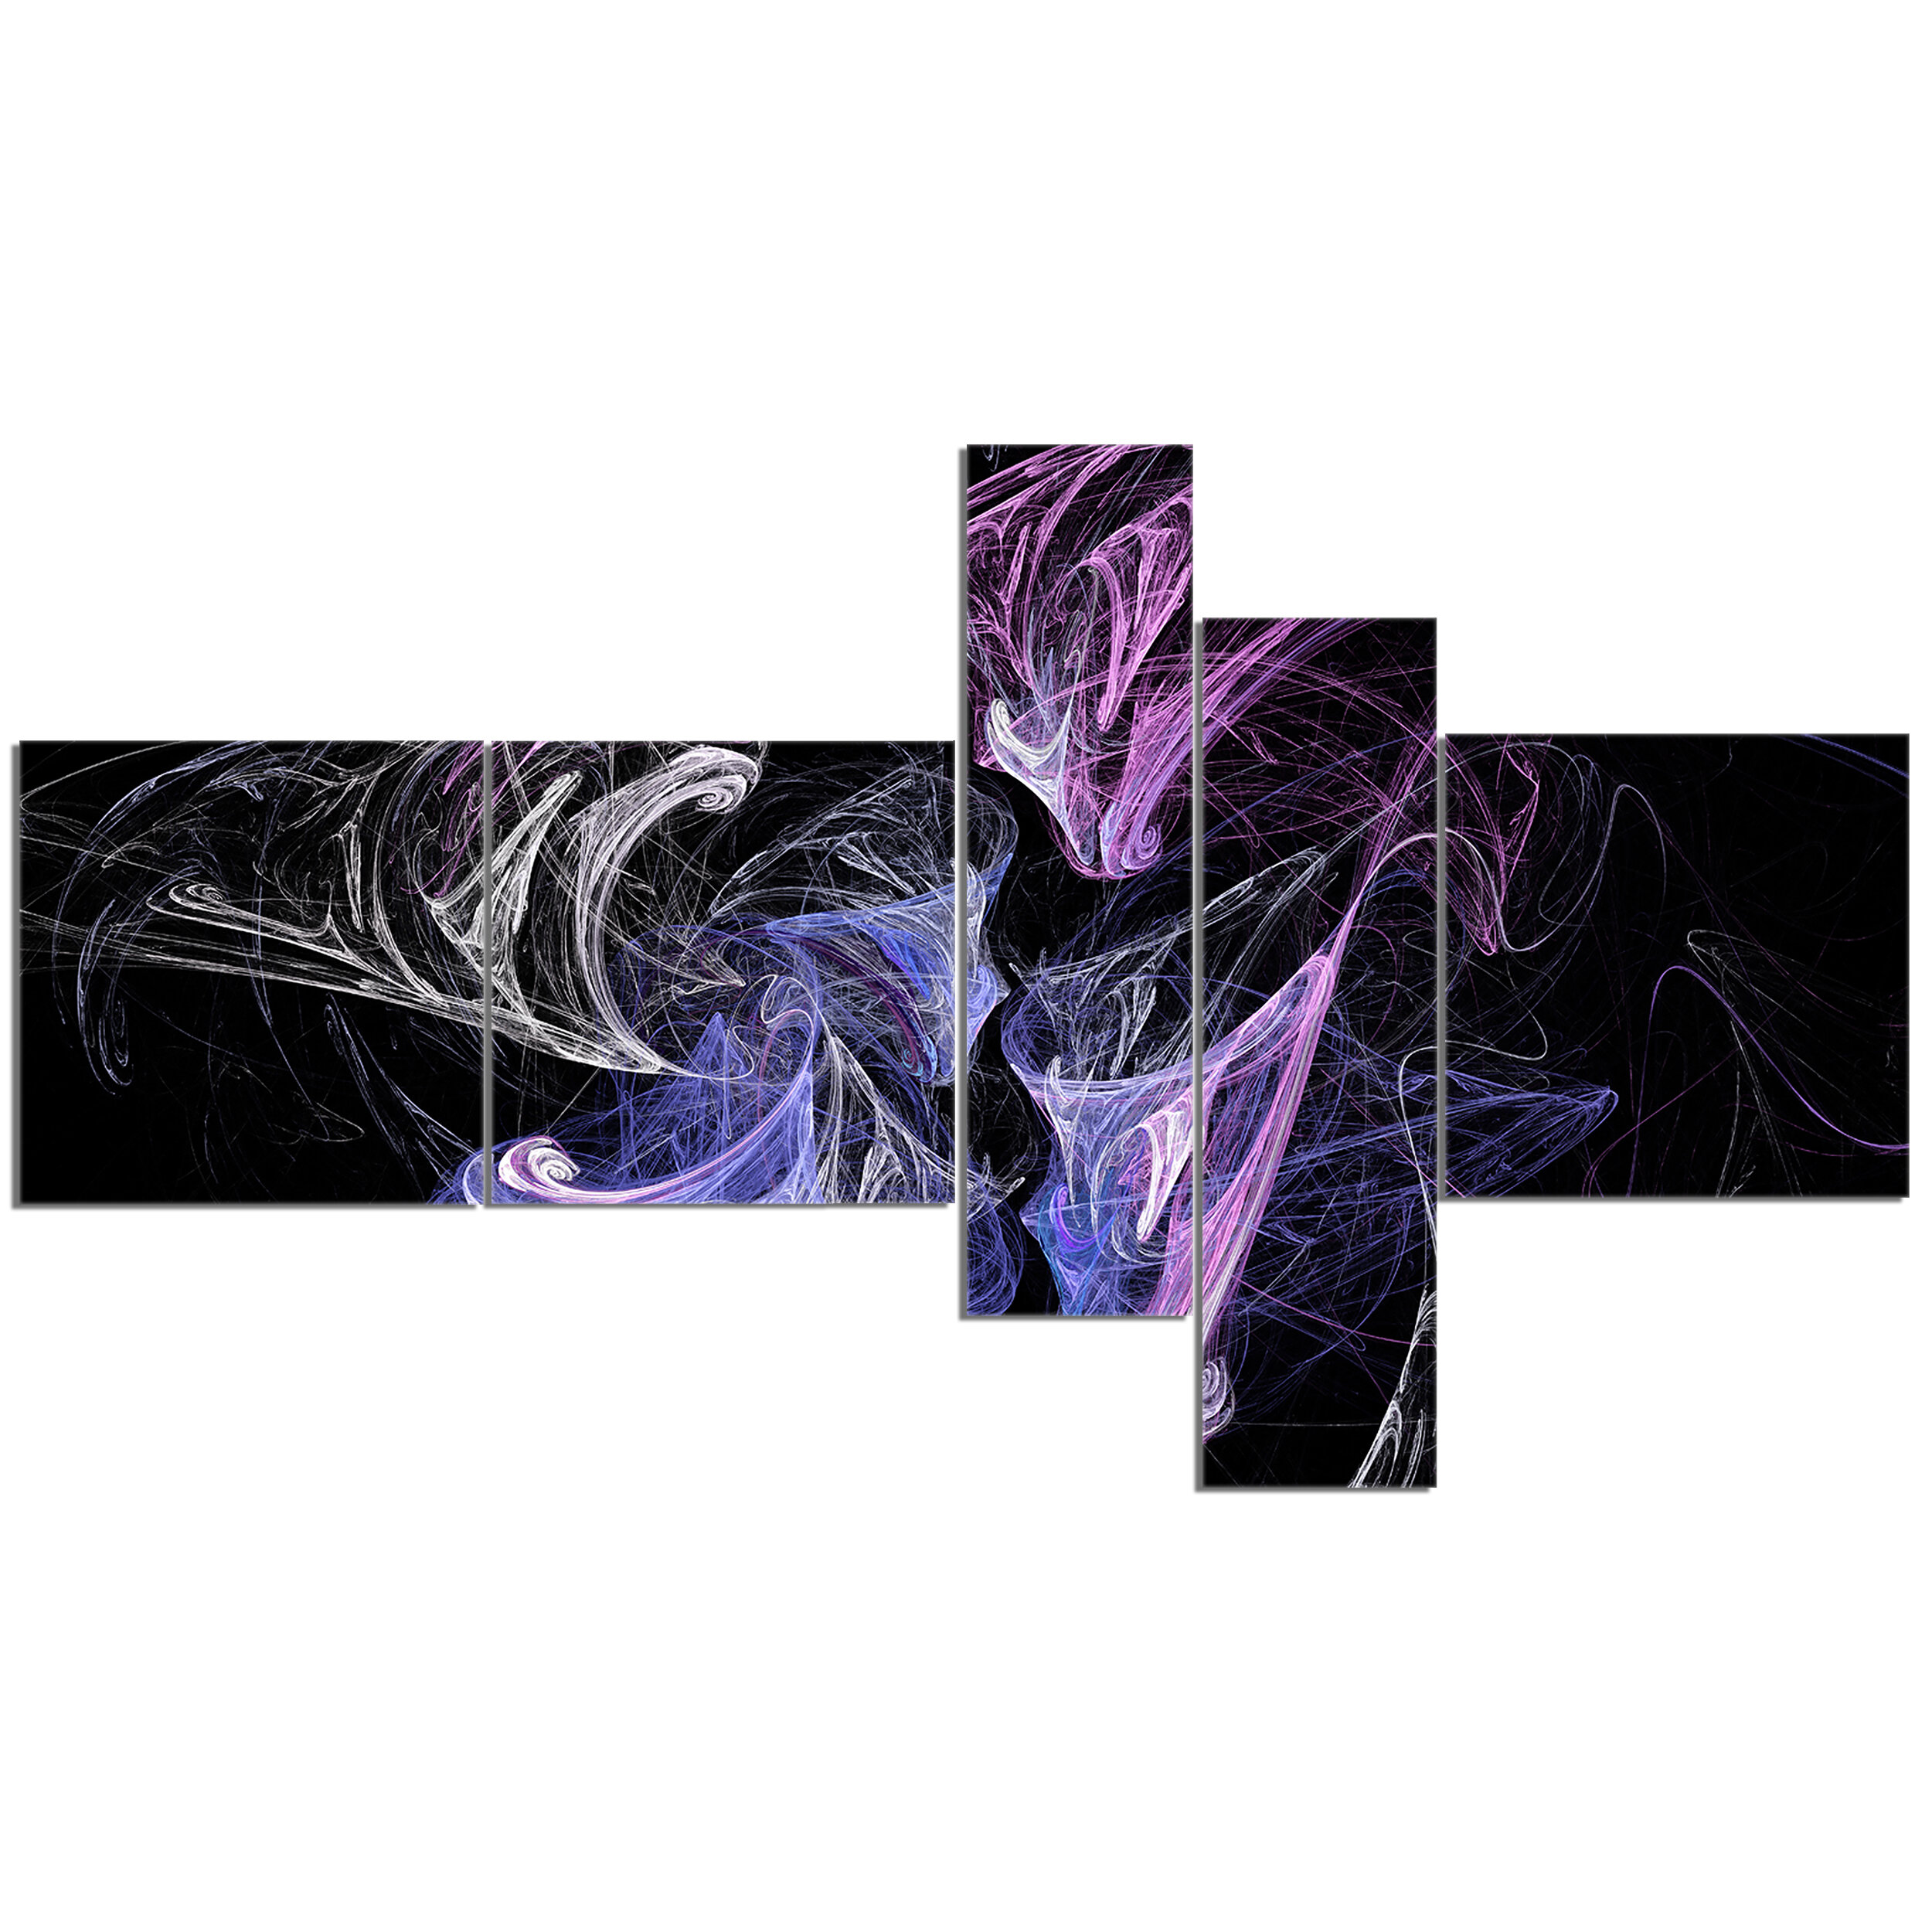 East Urban Home Billowing Smoke Blue Purple Graphic Art Print Multi Piece Image On Canvas Wayfair